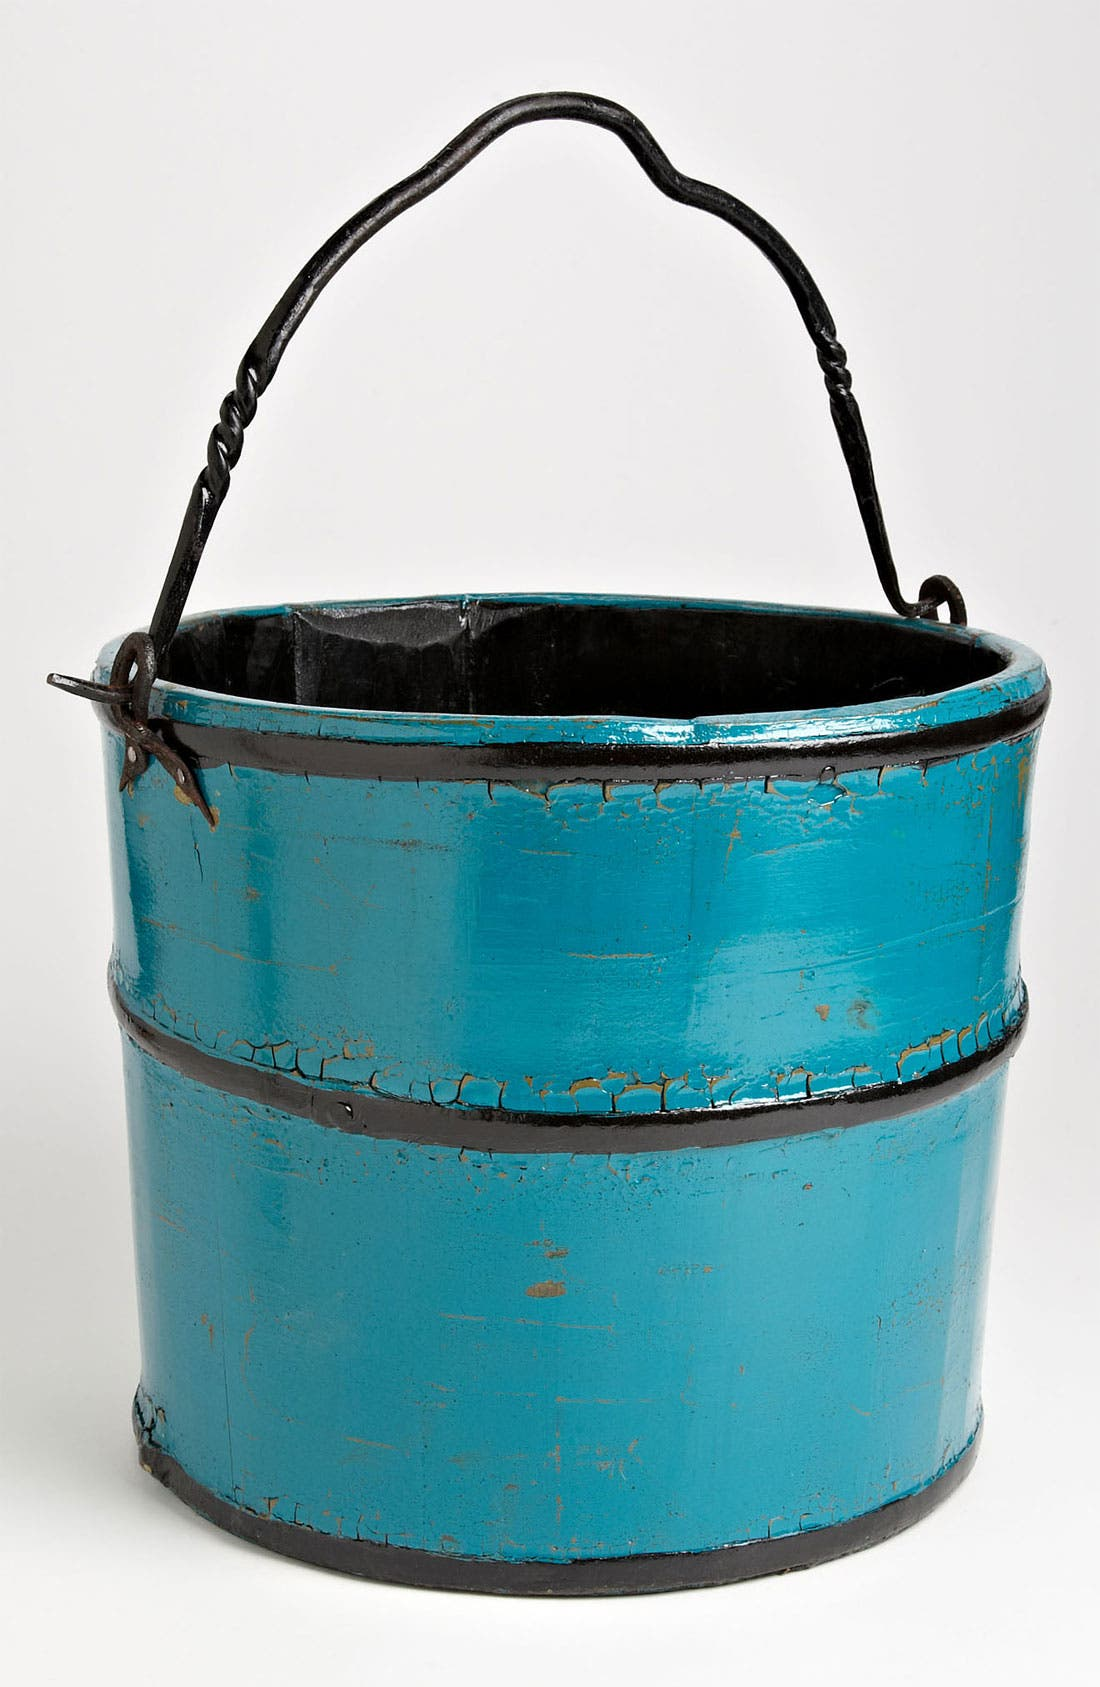 Alternate Image 1 Selected - Painted Wood Bucket, Large